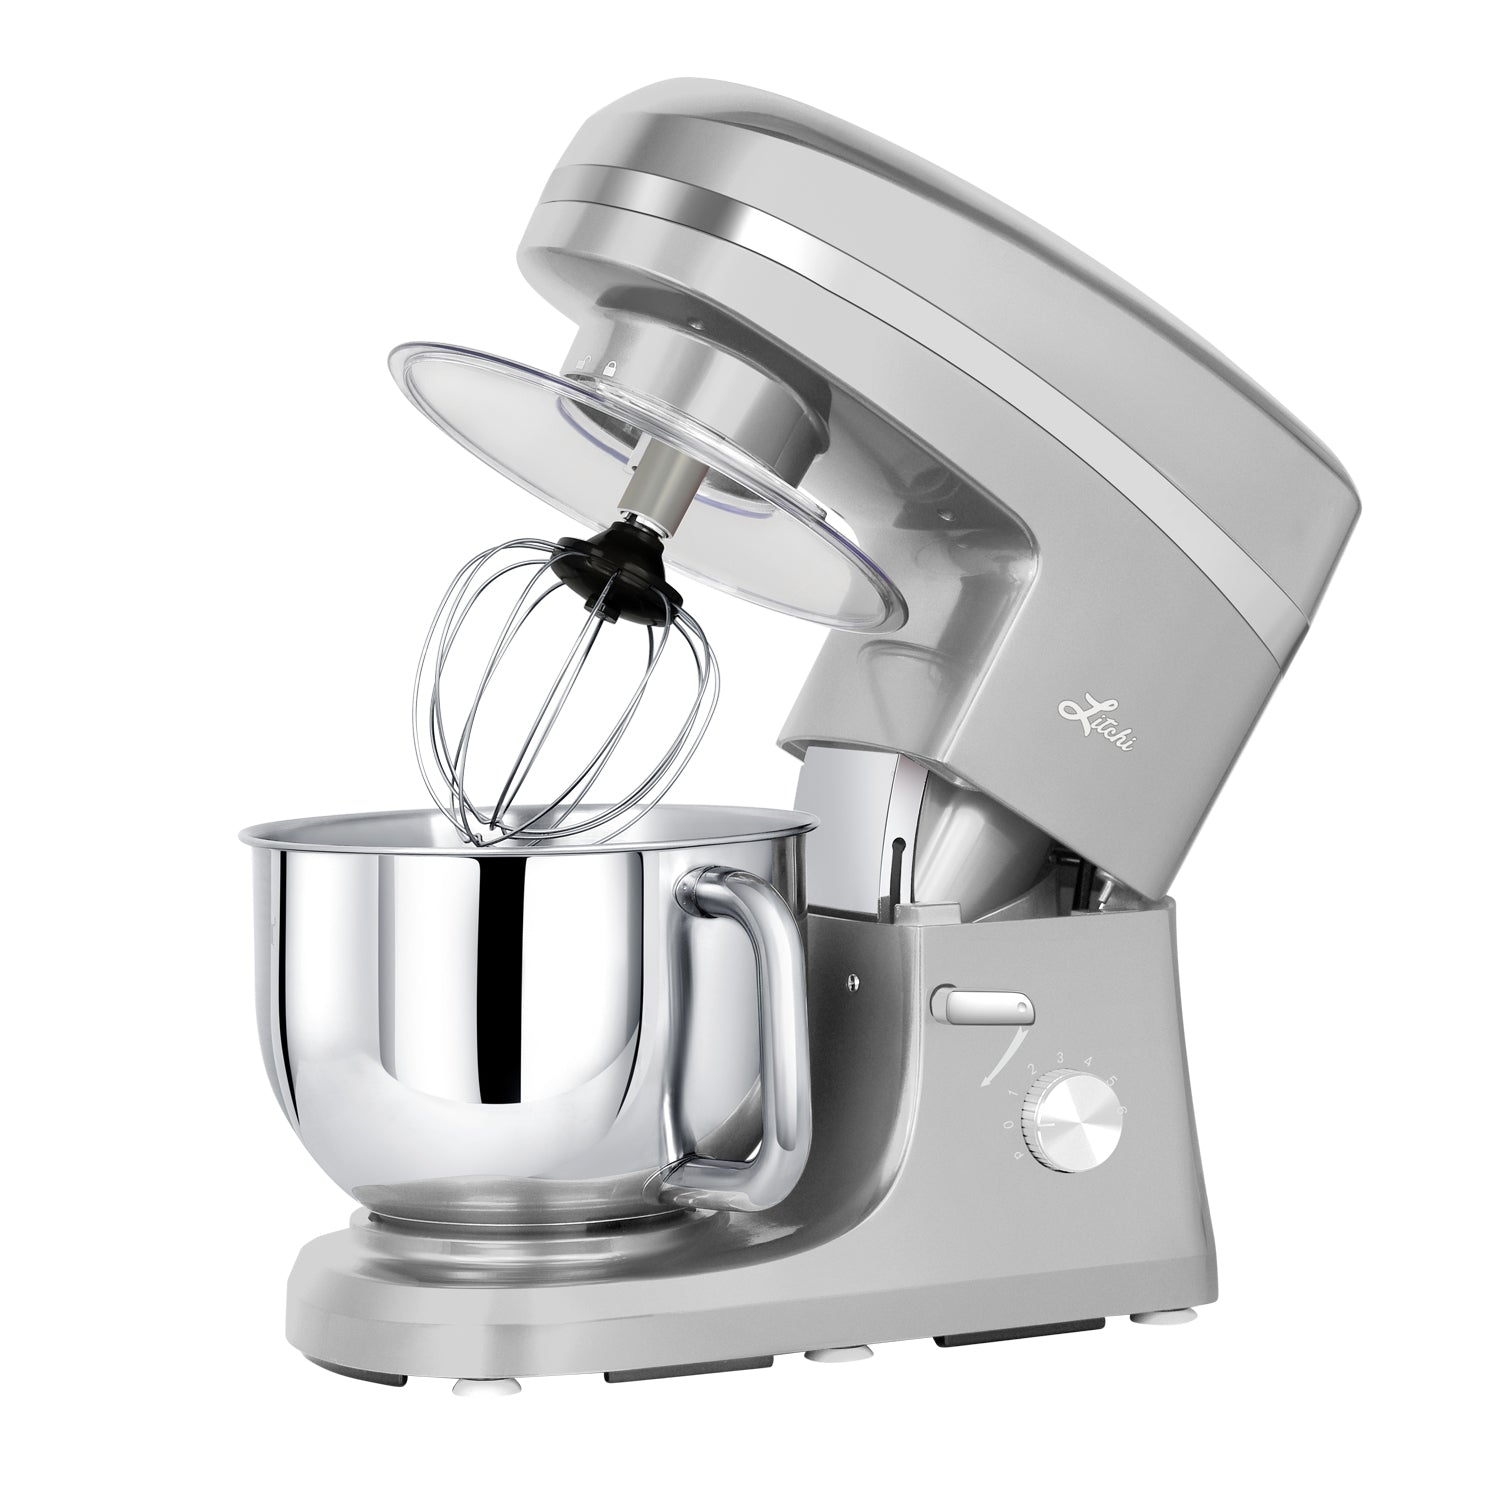 Litchi 4-IN1 Multi-function 5.5Qt Stand Mixer